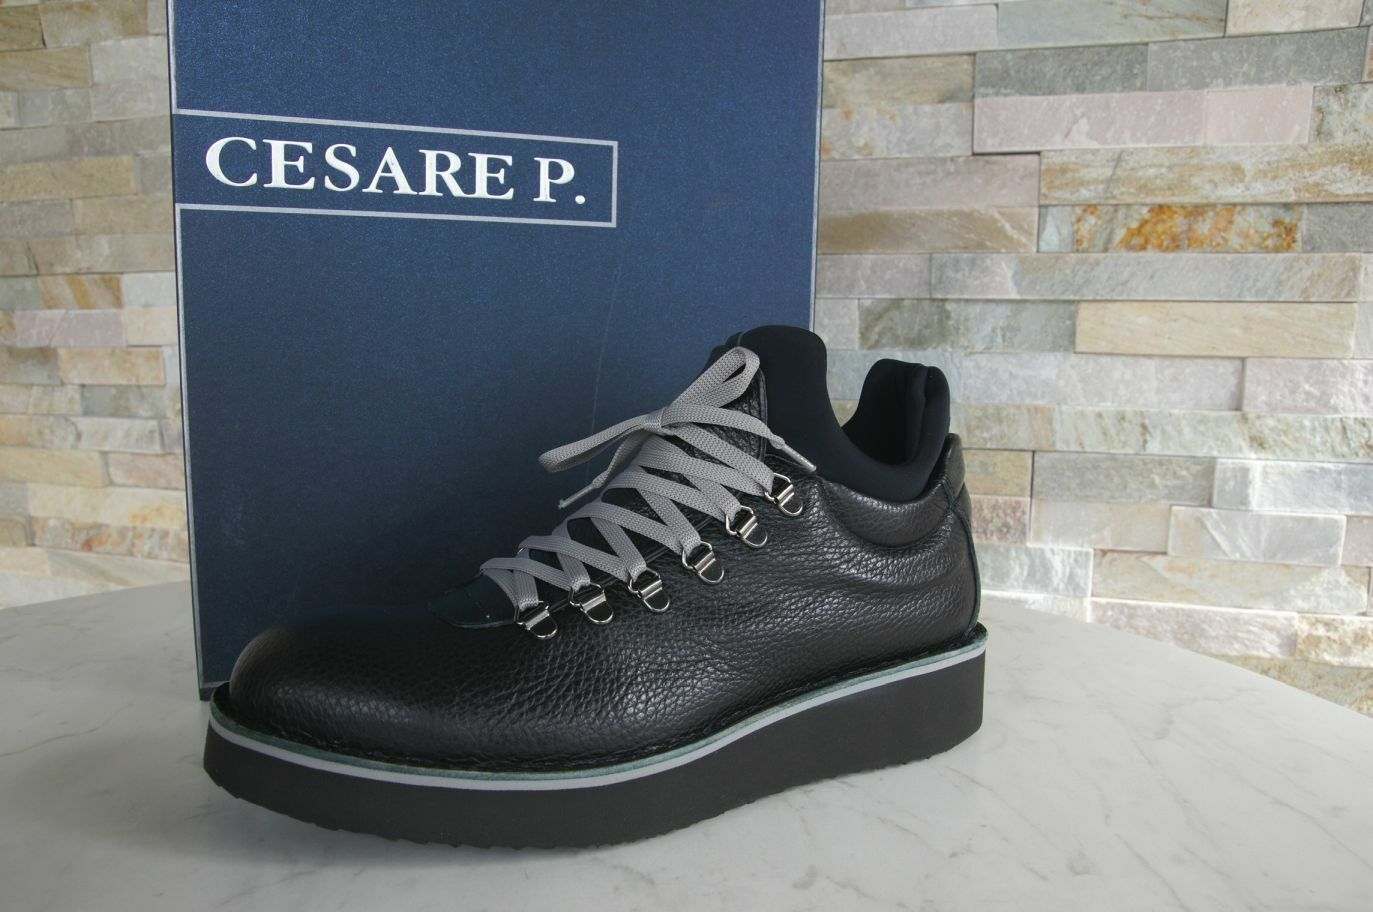 Cesare P.Size 6 40 Ankle Boots Lace up shoes Black New Previously